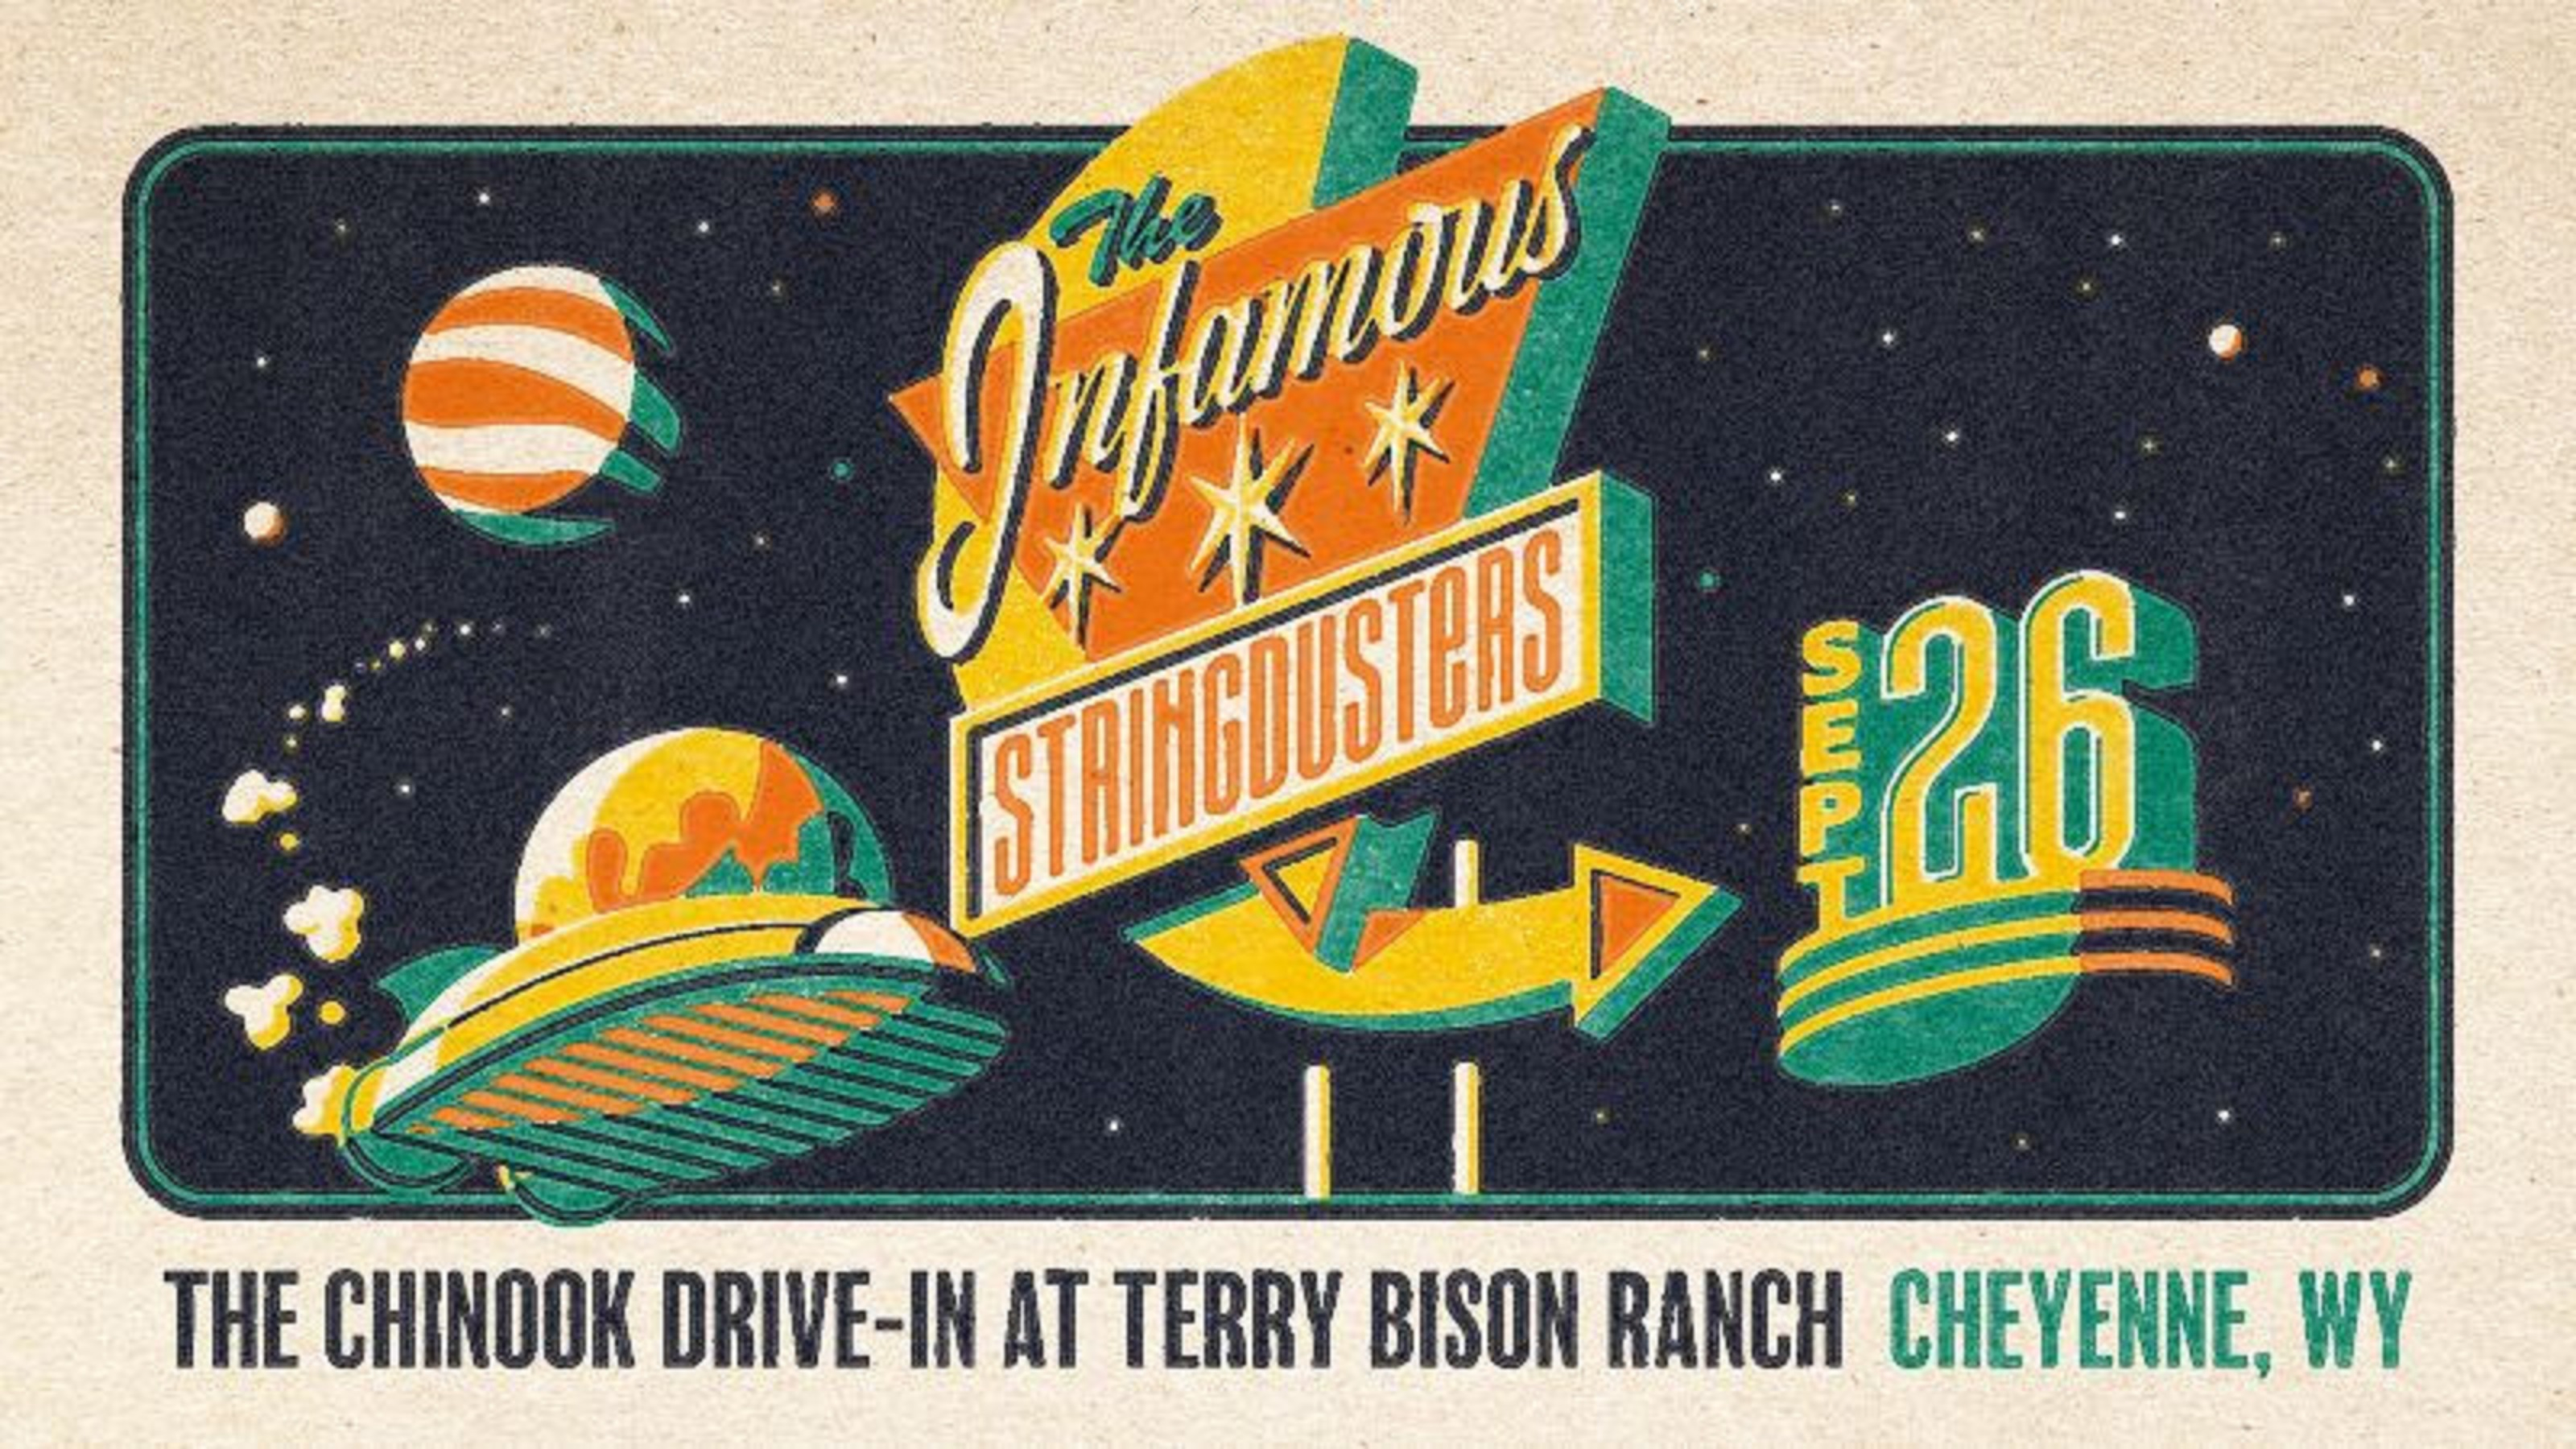 The Infamous Stringdusters at Chinook Drive-In at Terry Bison Ranch 9/2